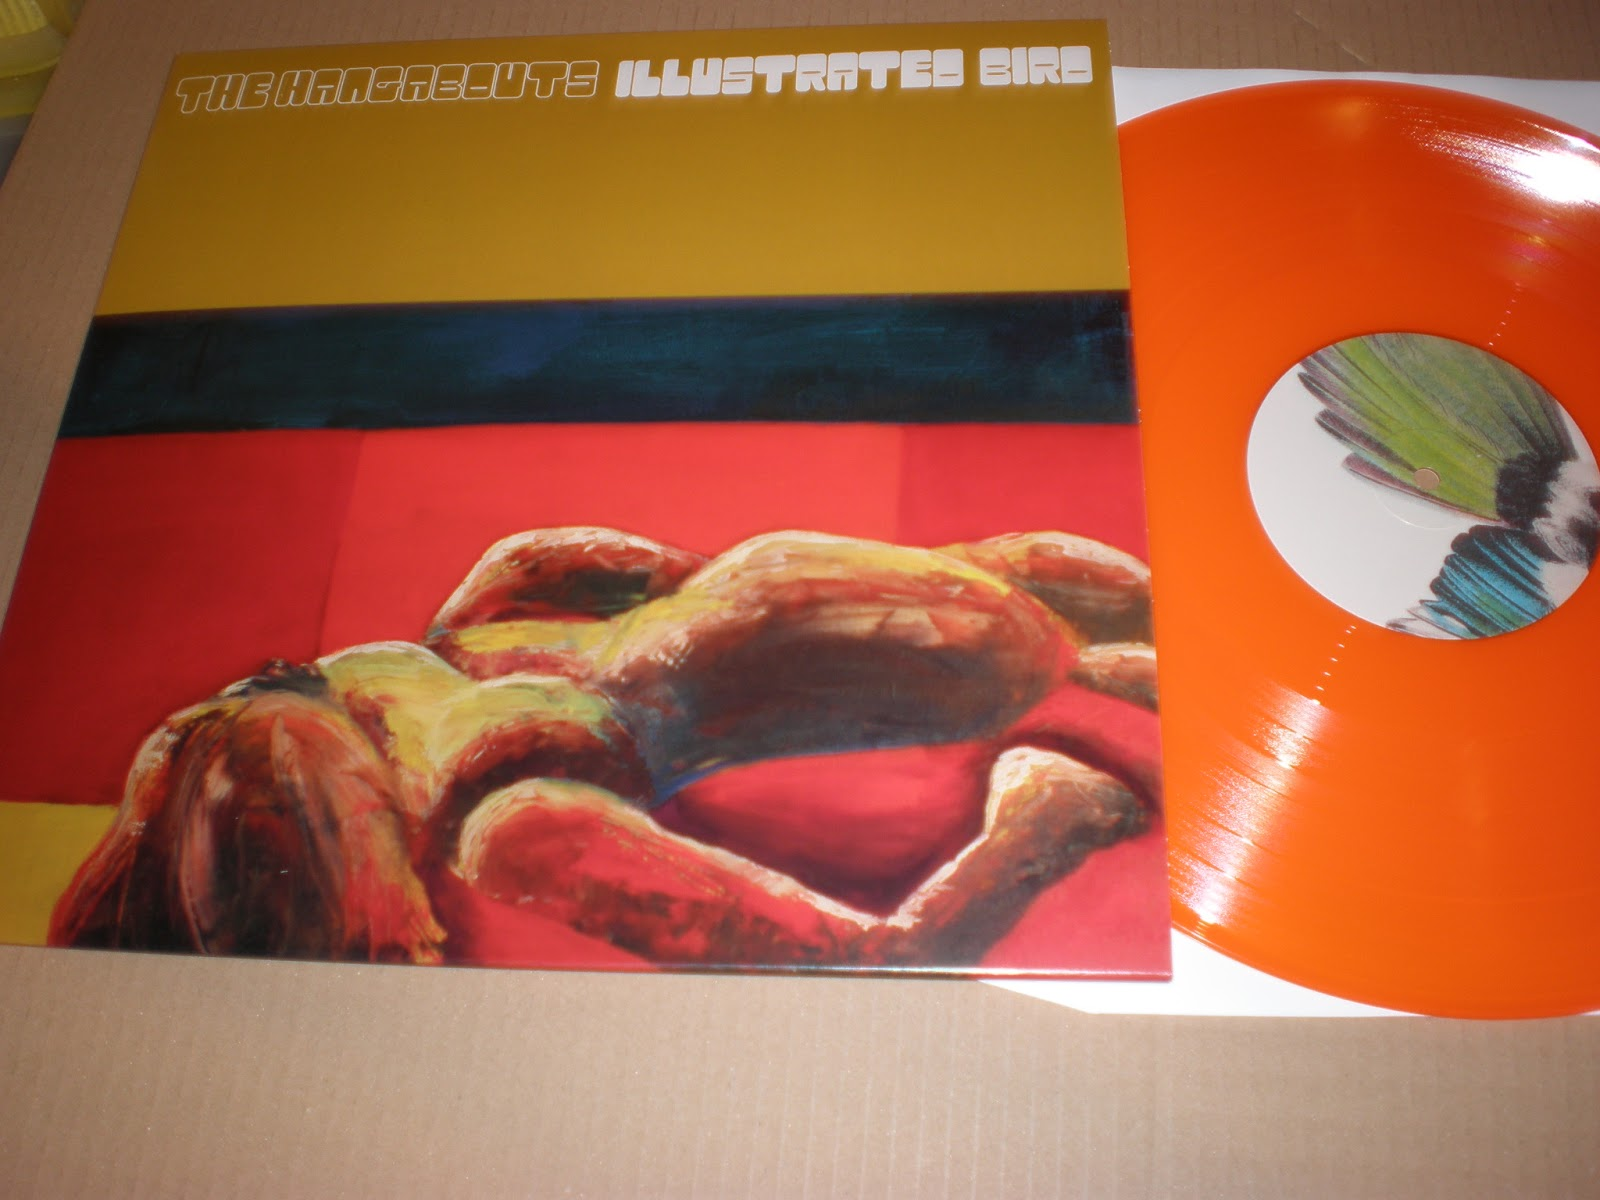 Orange pop records s profile hear the world s sounds - The Hangabouts Illustrated Bird Sugarbush Sb031 The Fabulous New Album On Vinyl By Detroit S Hangabouts Is One Of Those Albums That Any Label With A